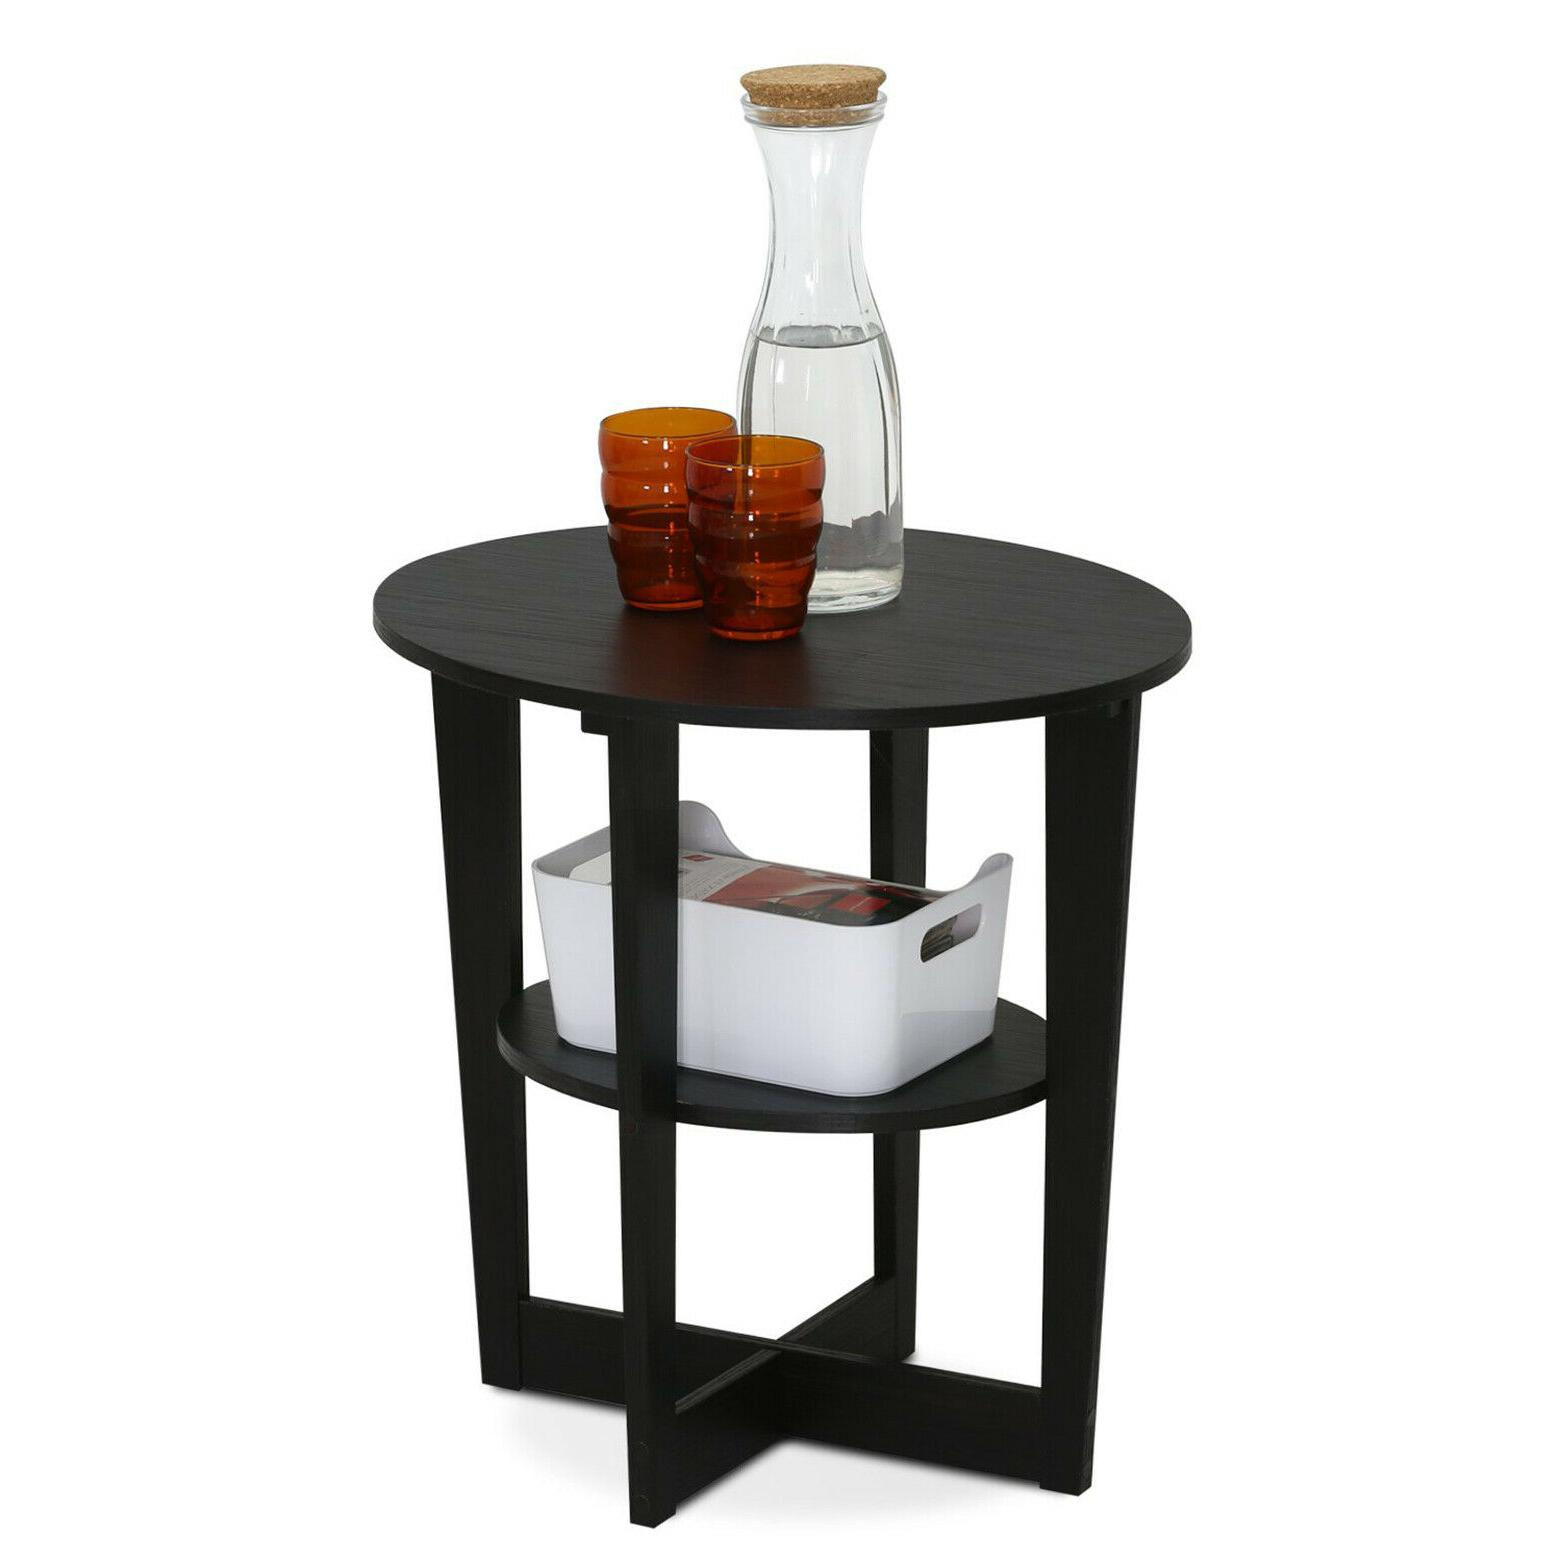 Black Walnut End Table Wedge Oval Night Stand Round Wooden